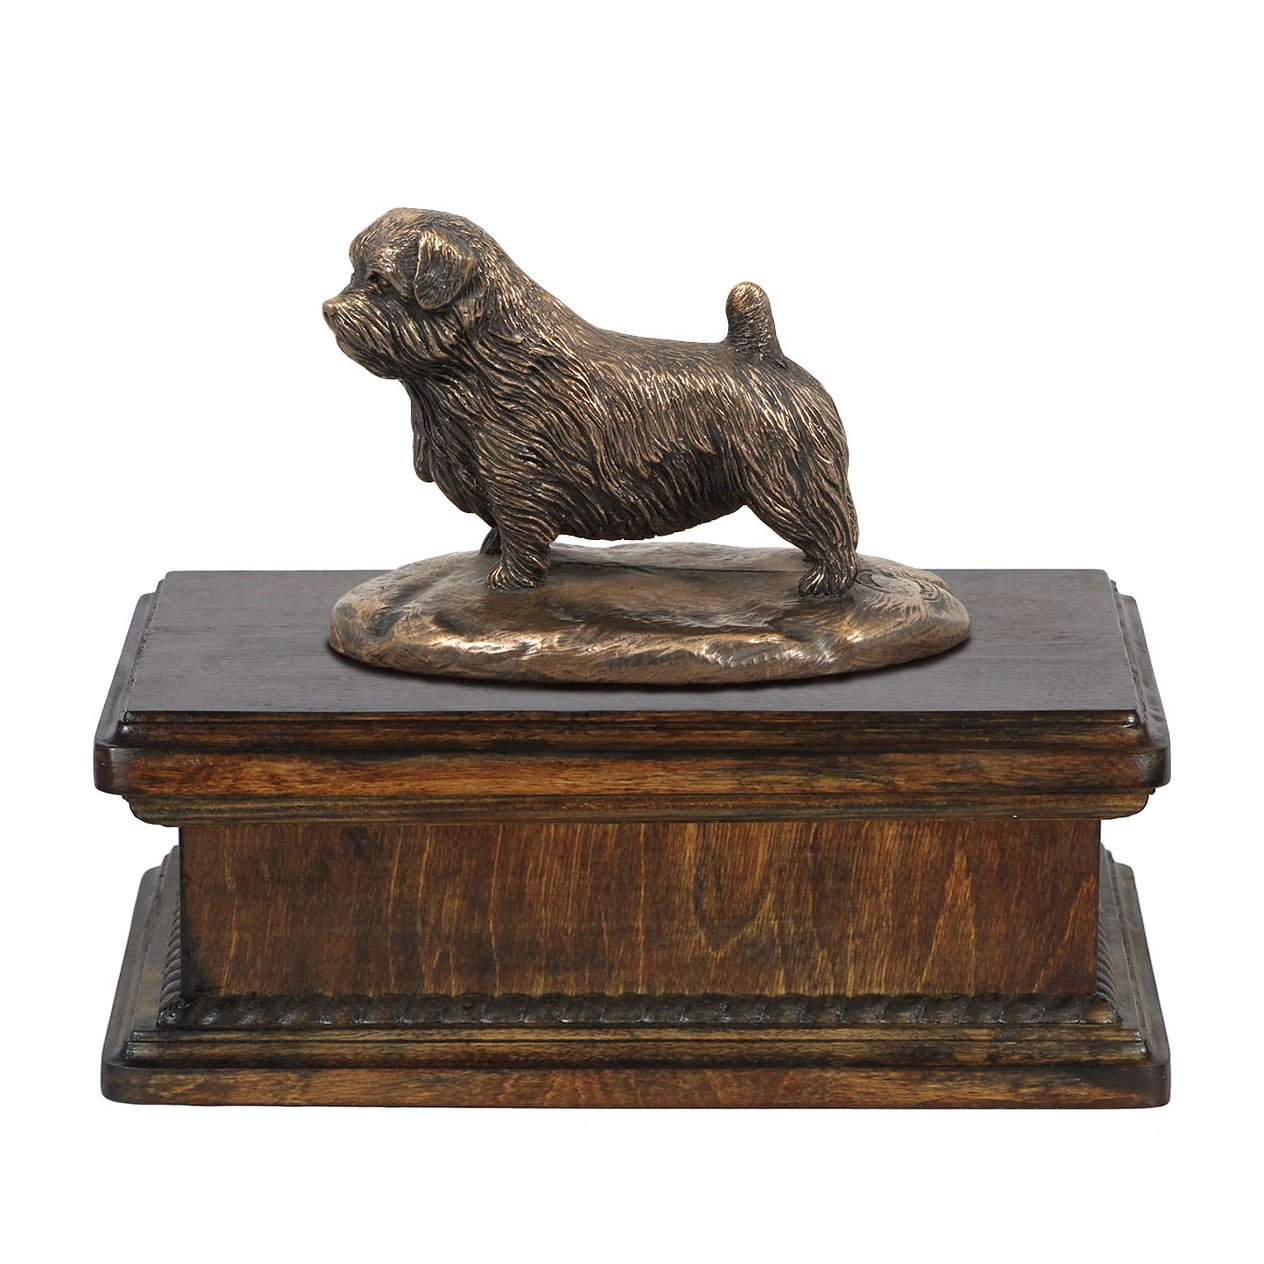 Norfolk Terrier, memorial, urn for dog's ashes, with dog statue, exclusive, ArtDog